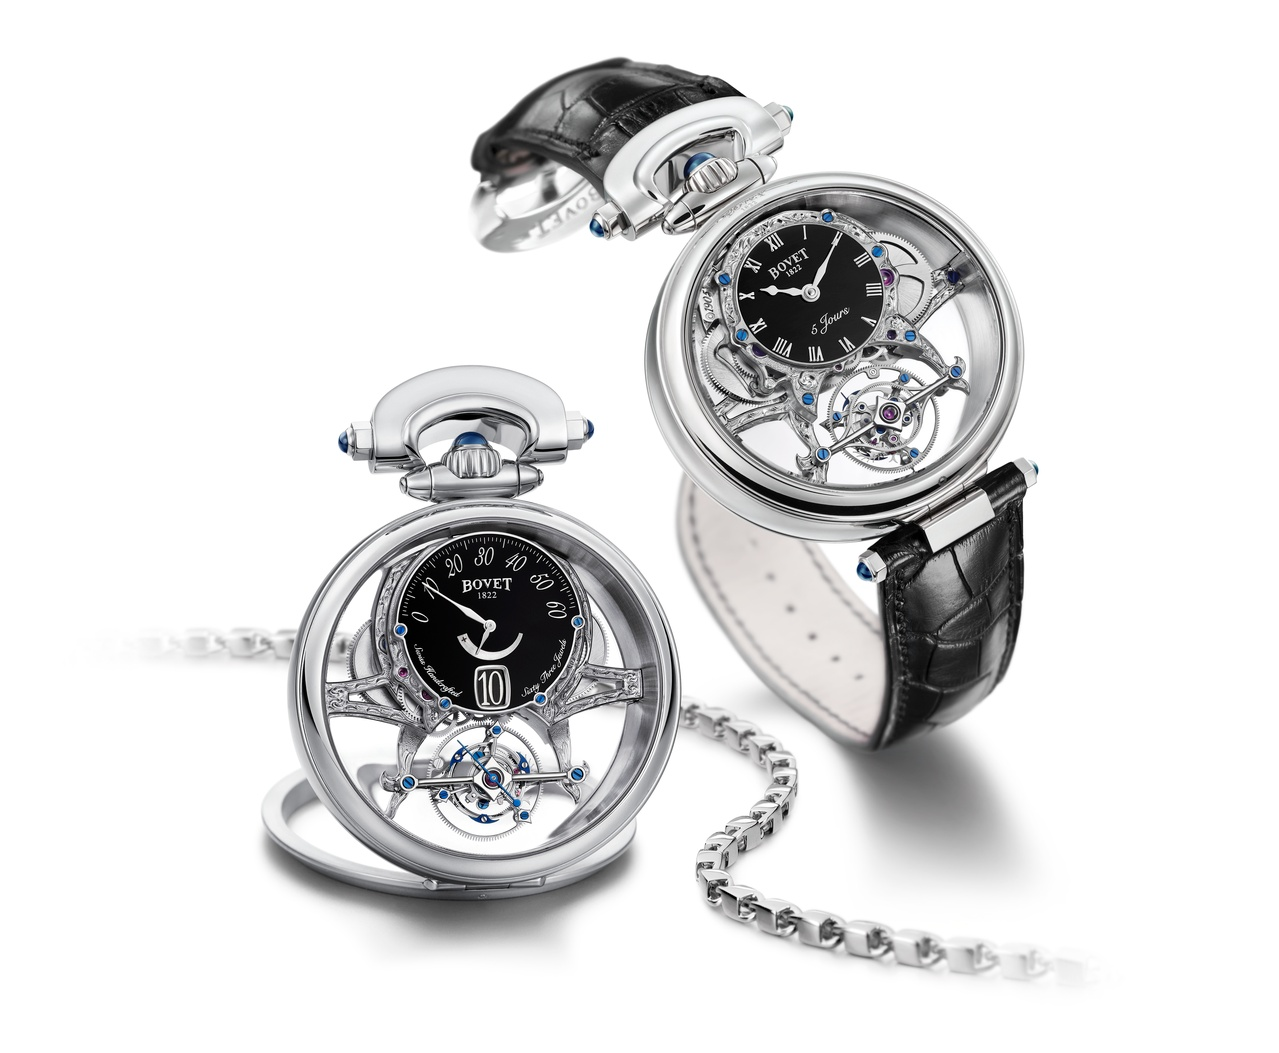 Bovet Watch   Amadeo Fleurier Grandes Complications   Ref. Nr.  AIVI002    Call 312-944-3100  | For Availability